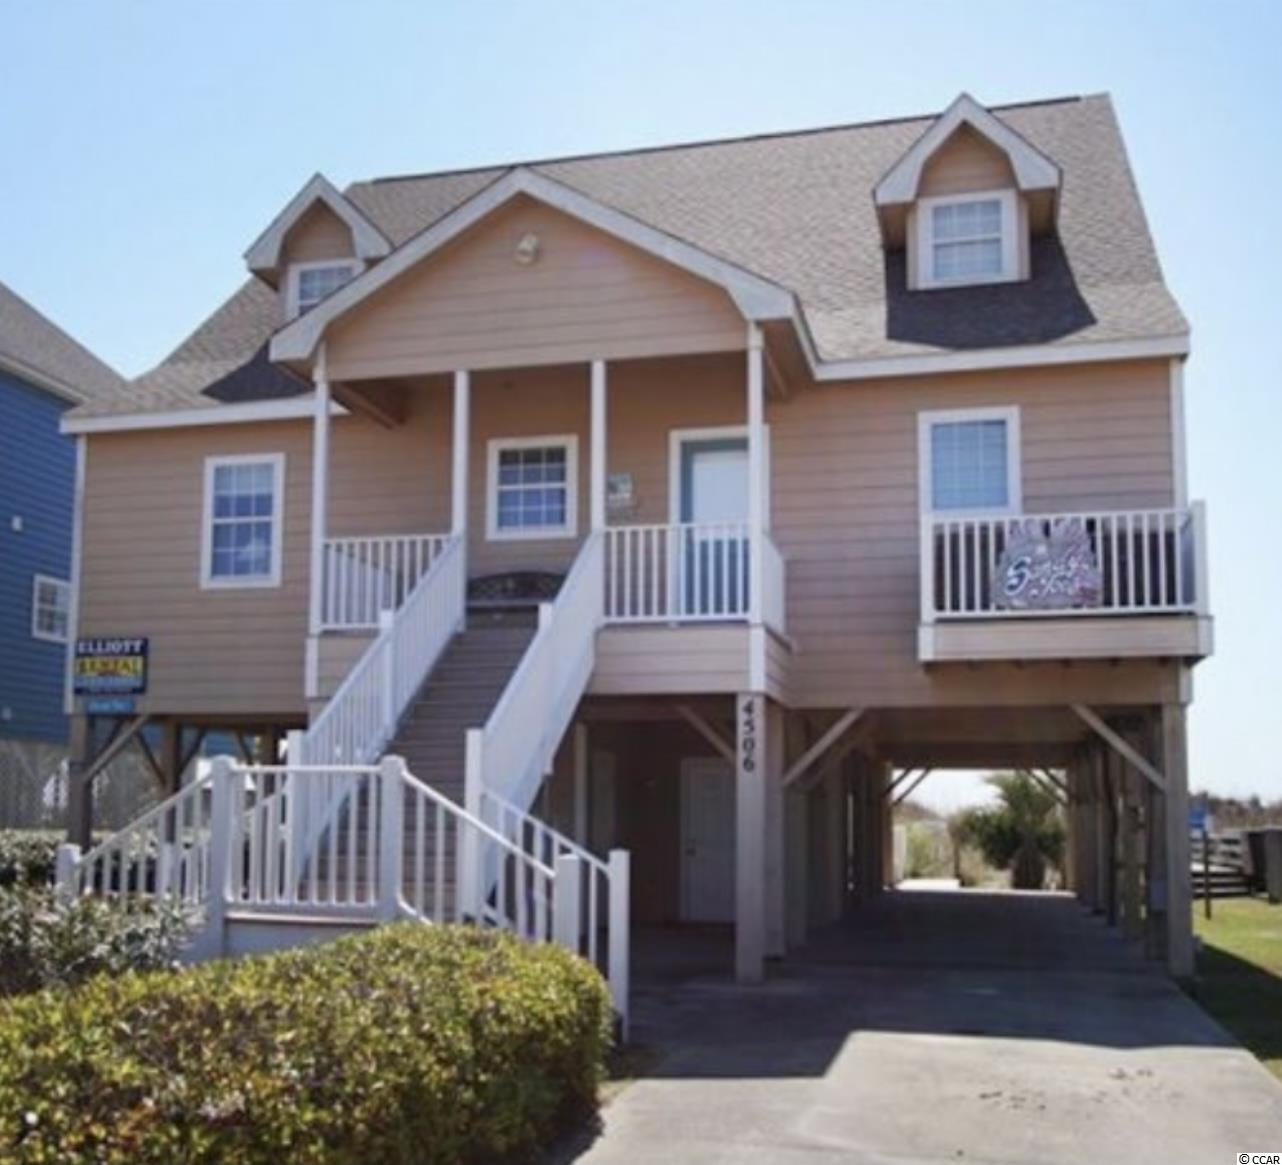 Oceanfront Investment in the family friendly  Cherry Grove section of North Myrtle Beach!  This spacious direct oceanfront home features 6 bedrooms and 6 full bathrooms , wood floors throughout with tile in kitchen and baths. You will love the soaring ceiling in the oceanfront living room.  Large fully equipped kitchen with granite counter tops, 2 refrigerators, butlers pantry, breakfast bar and eat in dining area.  Oceanfront master with new french doors leading out to oceanfront deck. Enjoy the afternoon on the back deck while taking in the salty air and overlooking the sparkling ocean or take a walk down the private wooden walkway to beach .  There is plenty of space for everyone at Sandy Toes, perfect for an investment or vacation home. Home was recently renovated by expanding 2 of the bedrooms, HVAC in 2020 and roof in 2016.  has Don't miss out on this one , it won't last long!